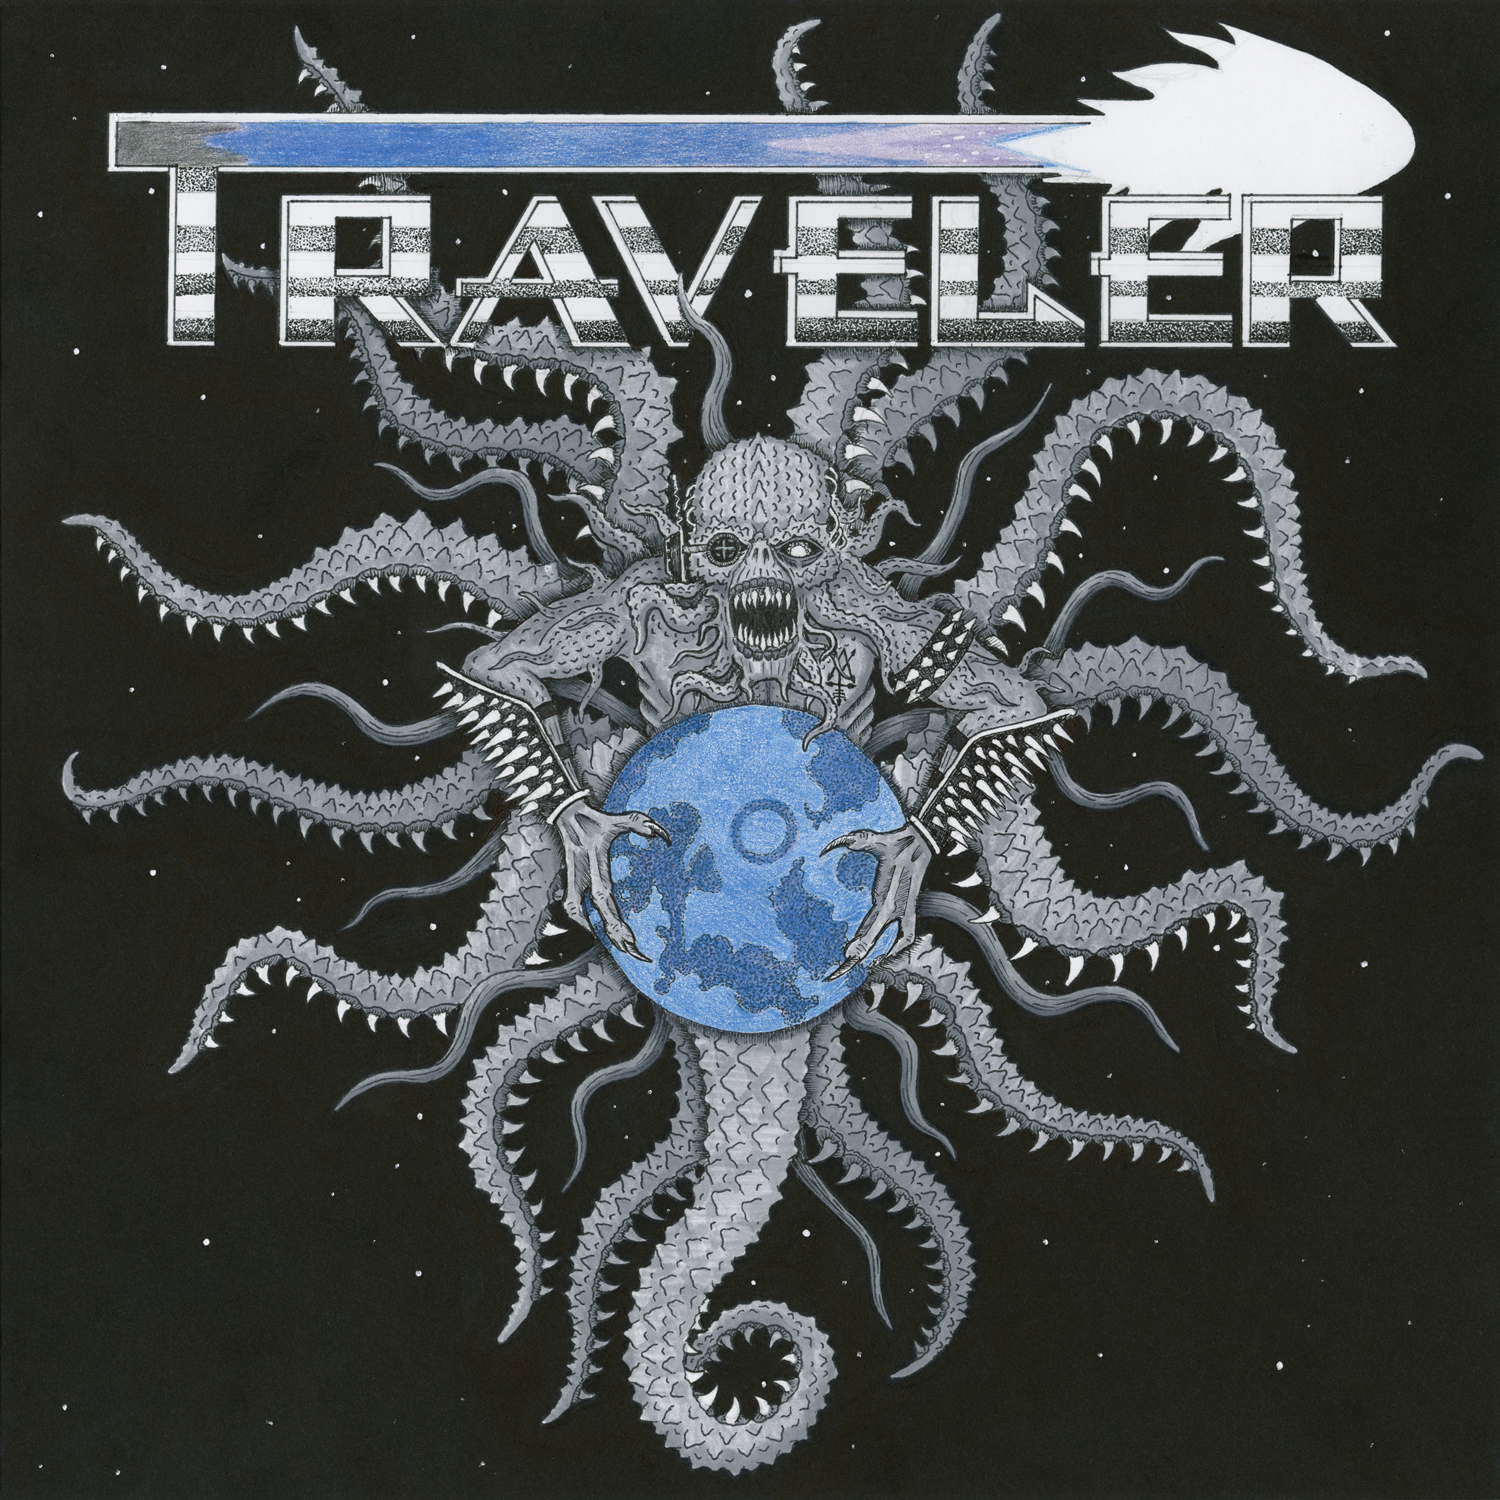 traveler-self-titeled-kanadisches-biest-album-review